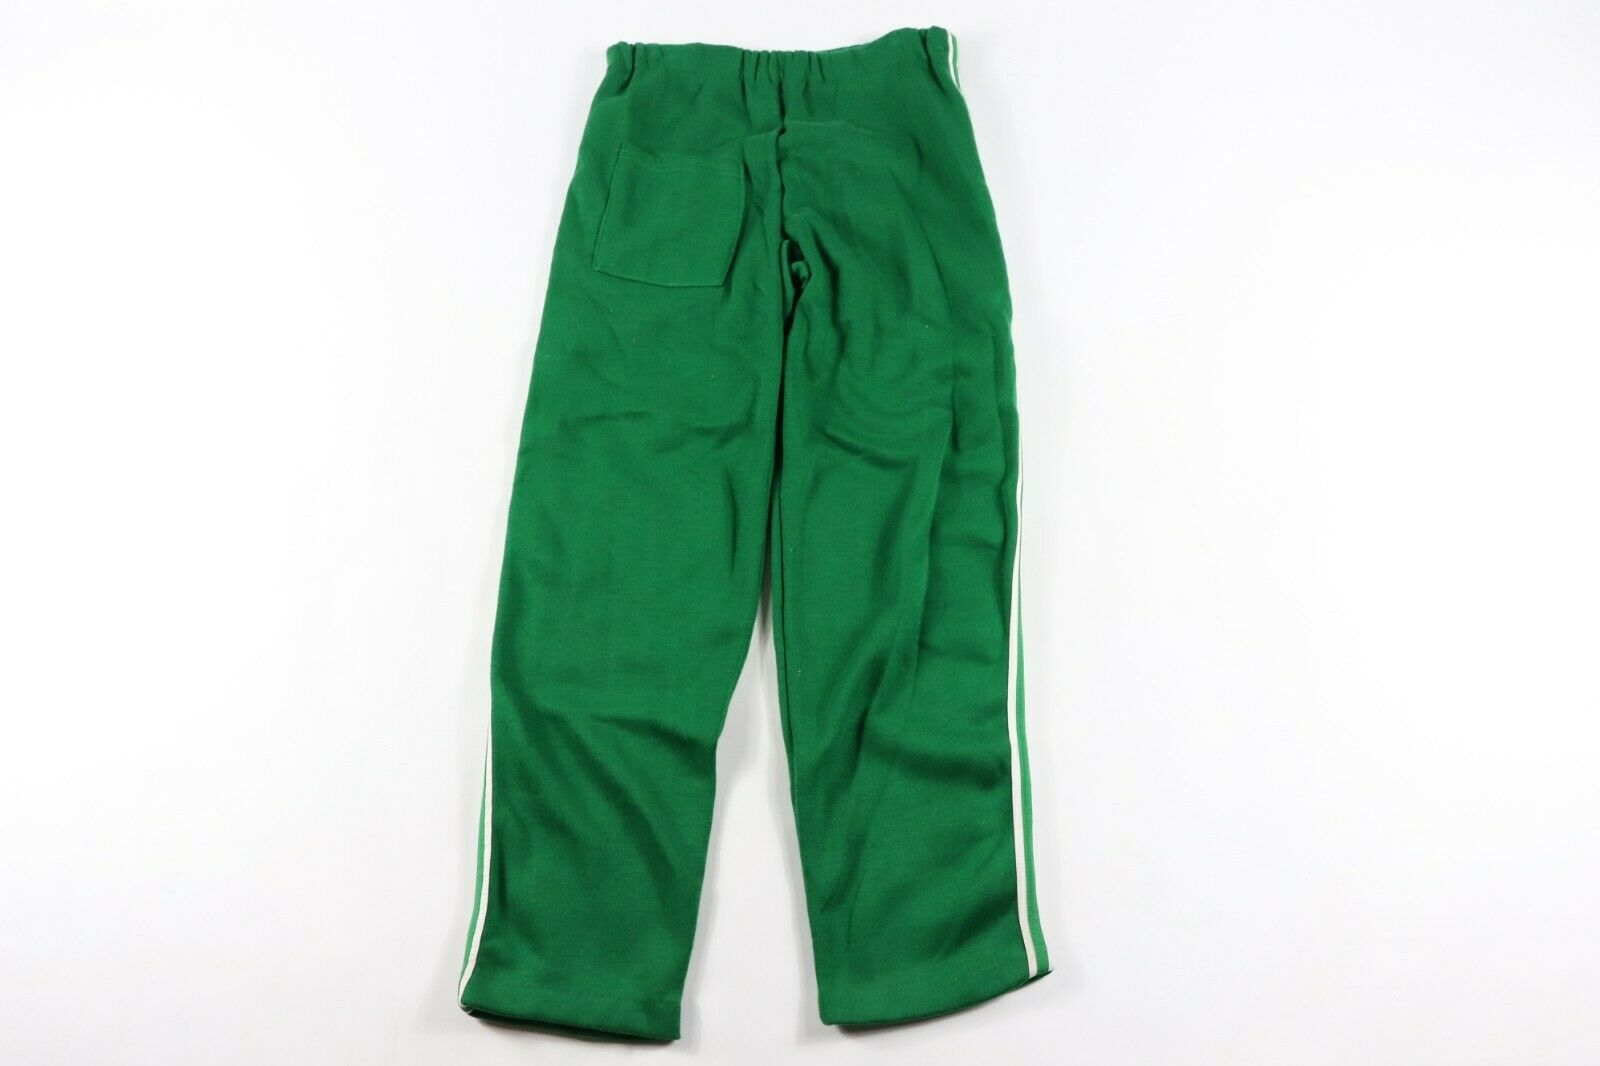 Vintage 90s New Brute Mens Large Casual Soccer Warm Up Sweatpants Pants Green